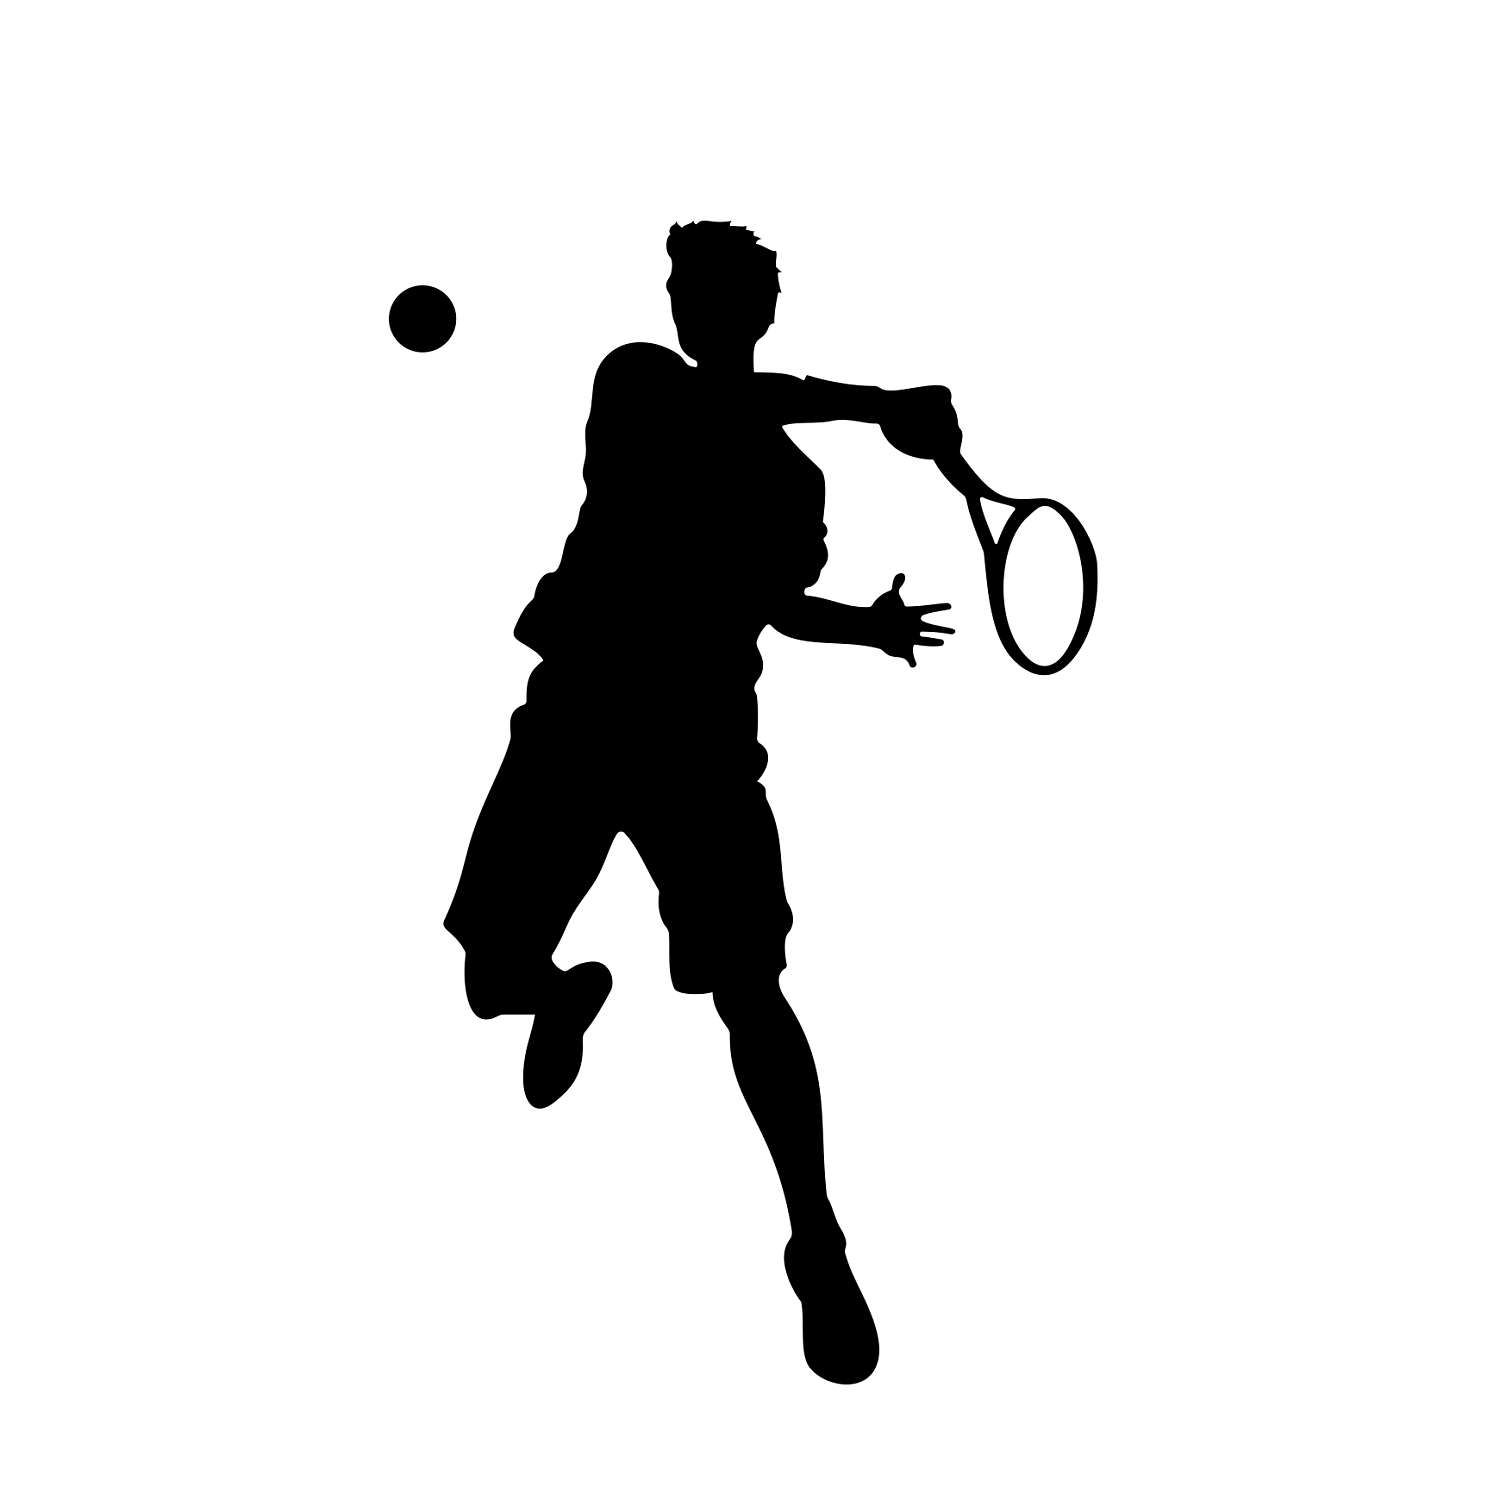 Tennis player clipart black and white png black and white download Pin szerzője: Sülle Katalin, közzétéve itt: Sports png black and white download